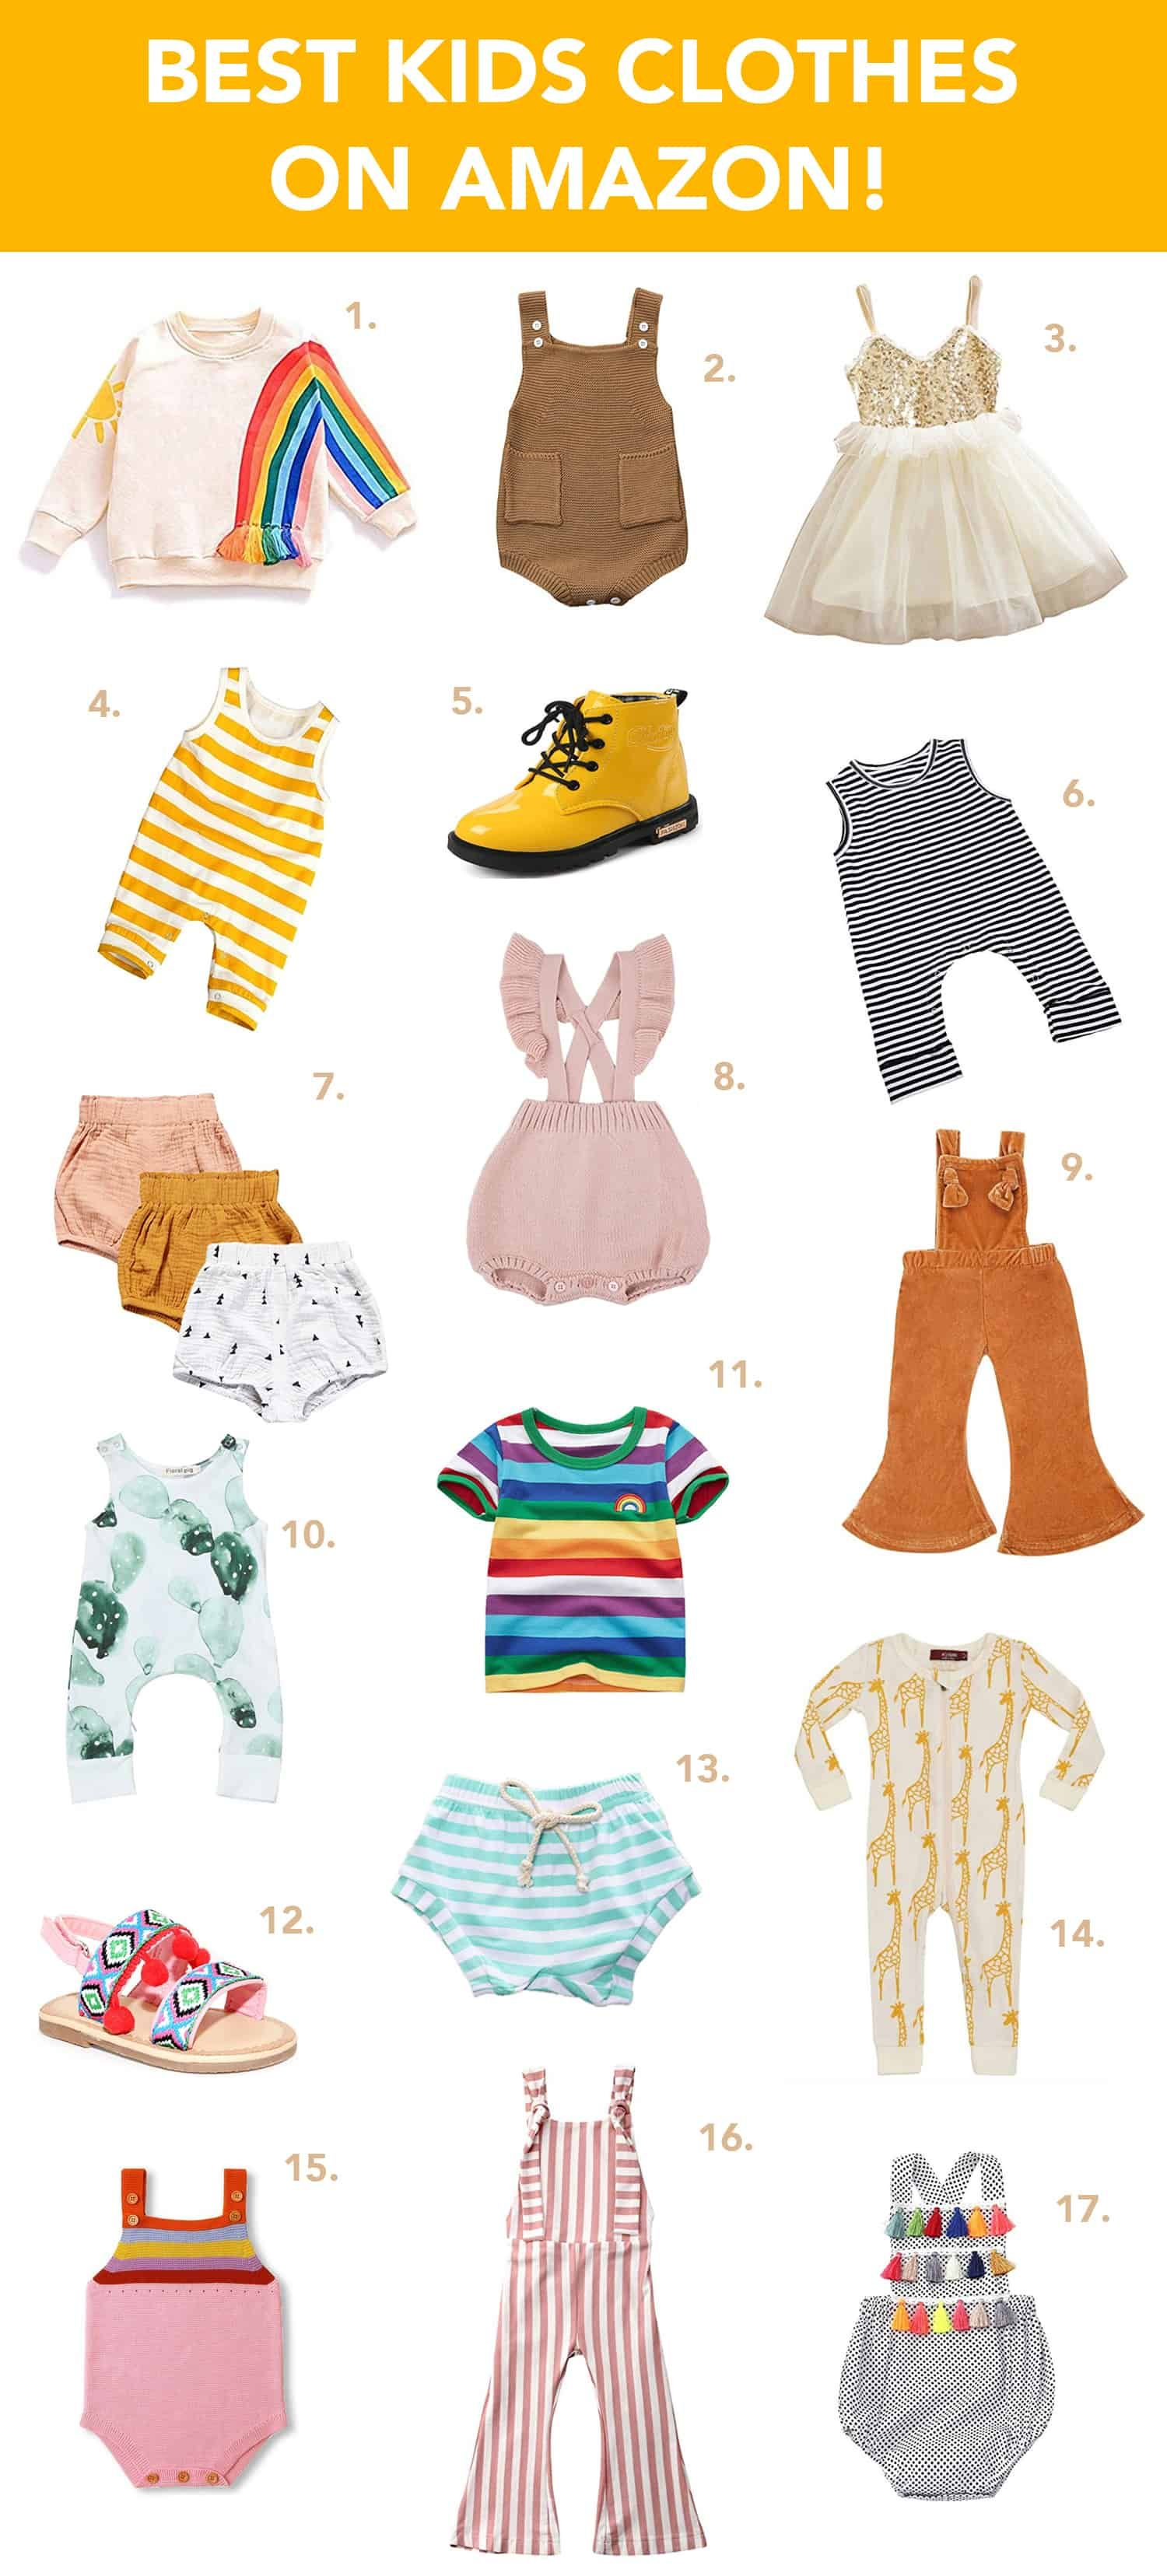 Our Favorite Kids Clothes On Amazon is part of Clothes Cute Kids - We definitely do a lot of shopping on Amazon these days and we've been finding lots of cute options for kiddos that we can throw in our cart too and get all our shopping done at once (always a plus for a busy Mom)  Here are some of our favorite kids clothes from our shopping carts or current closets right now!